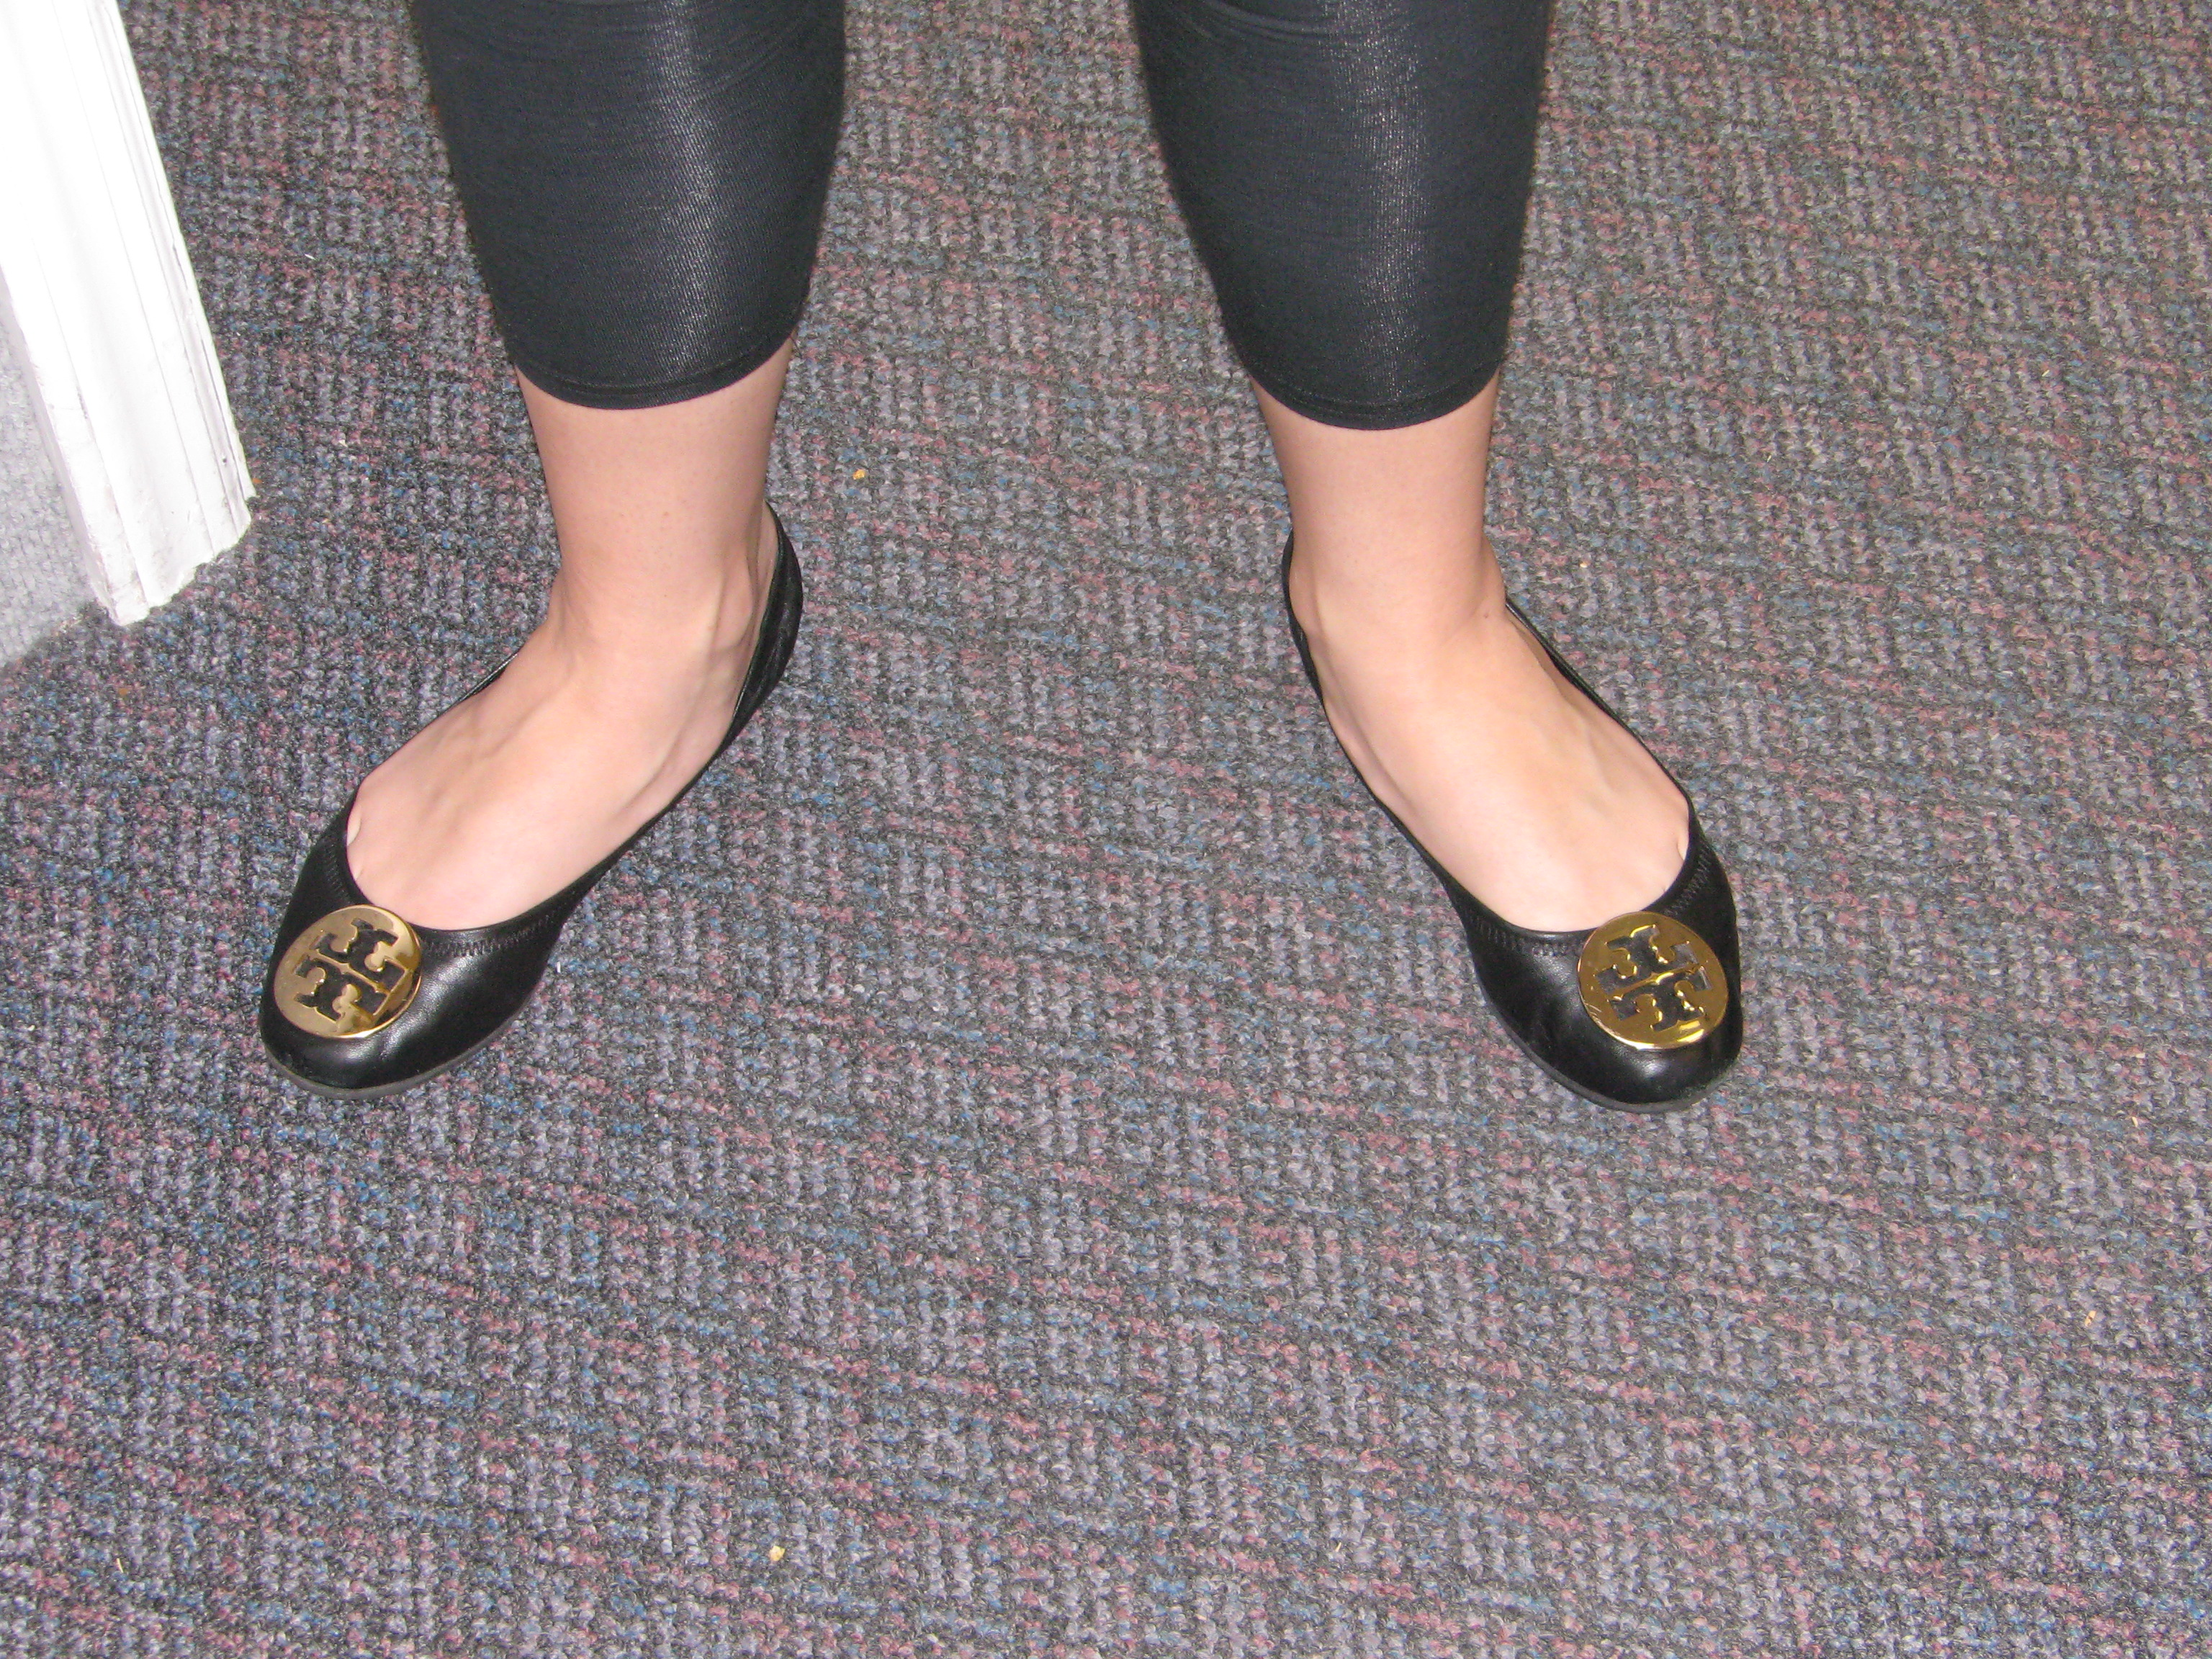 File:20081102 Tory Burch medallioned shoes.JPG